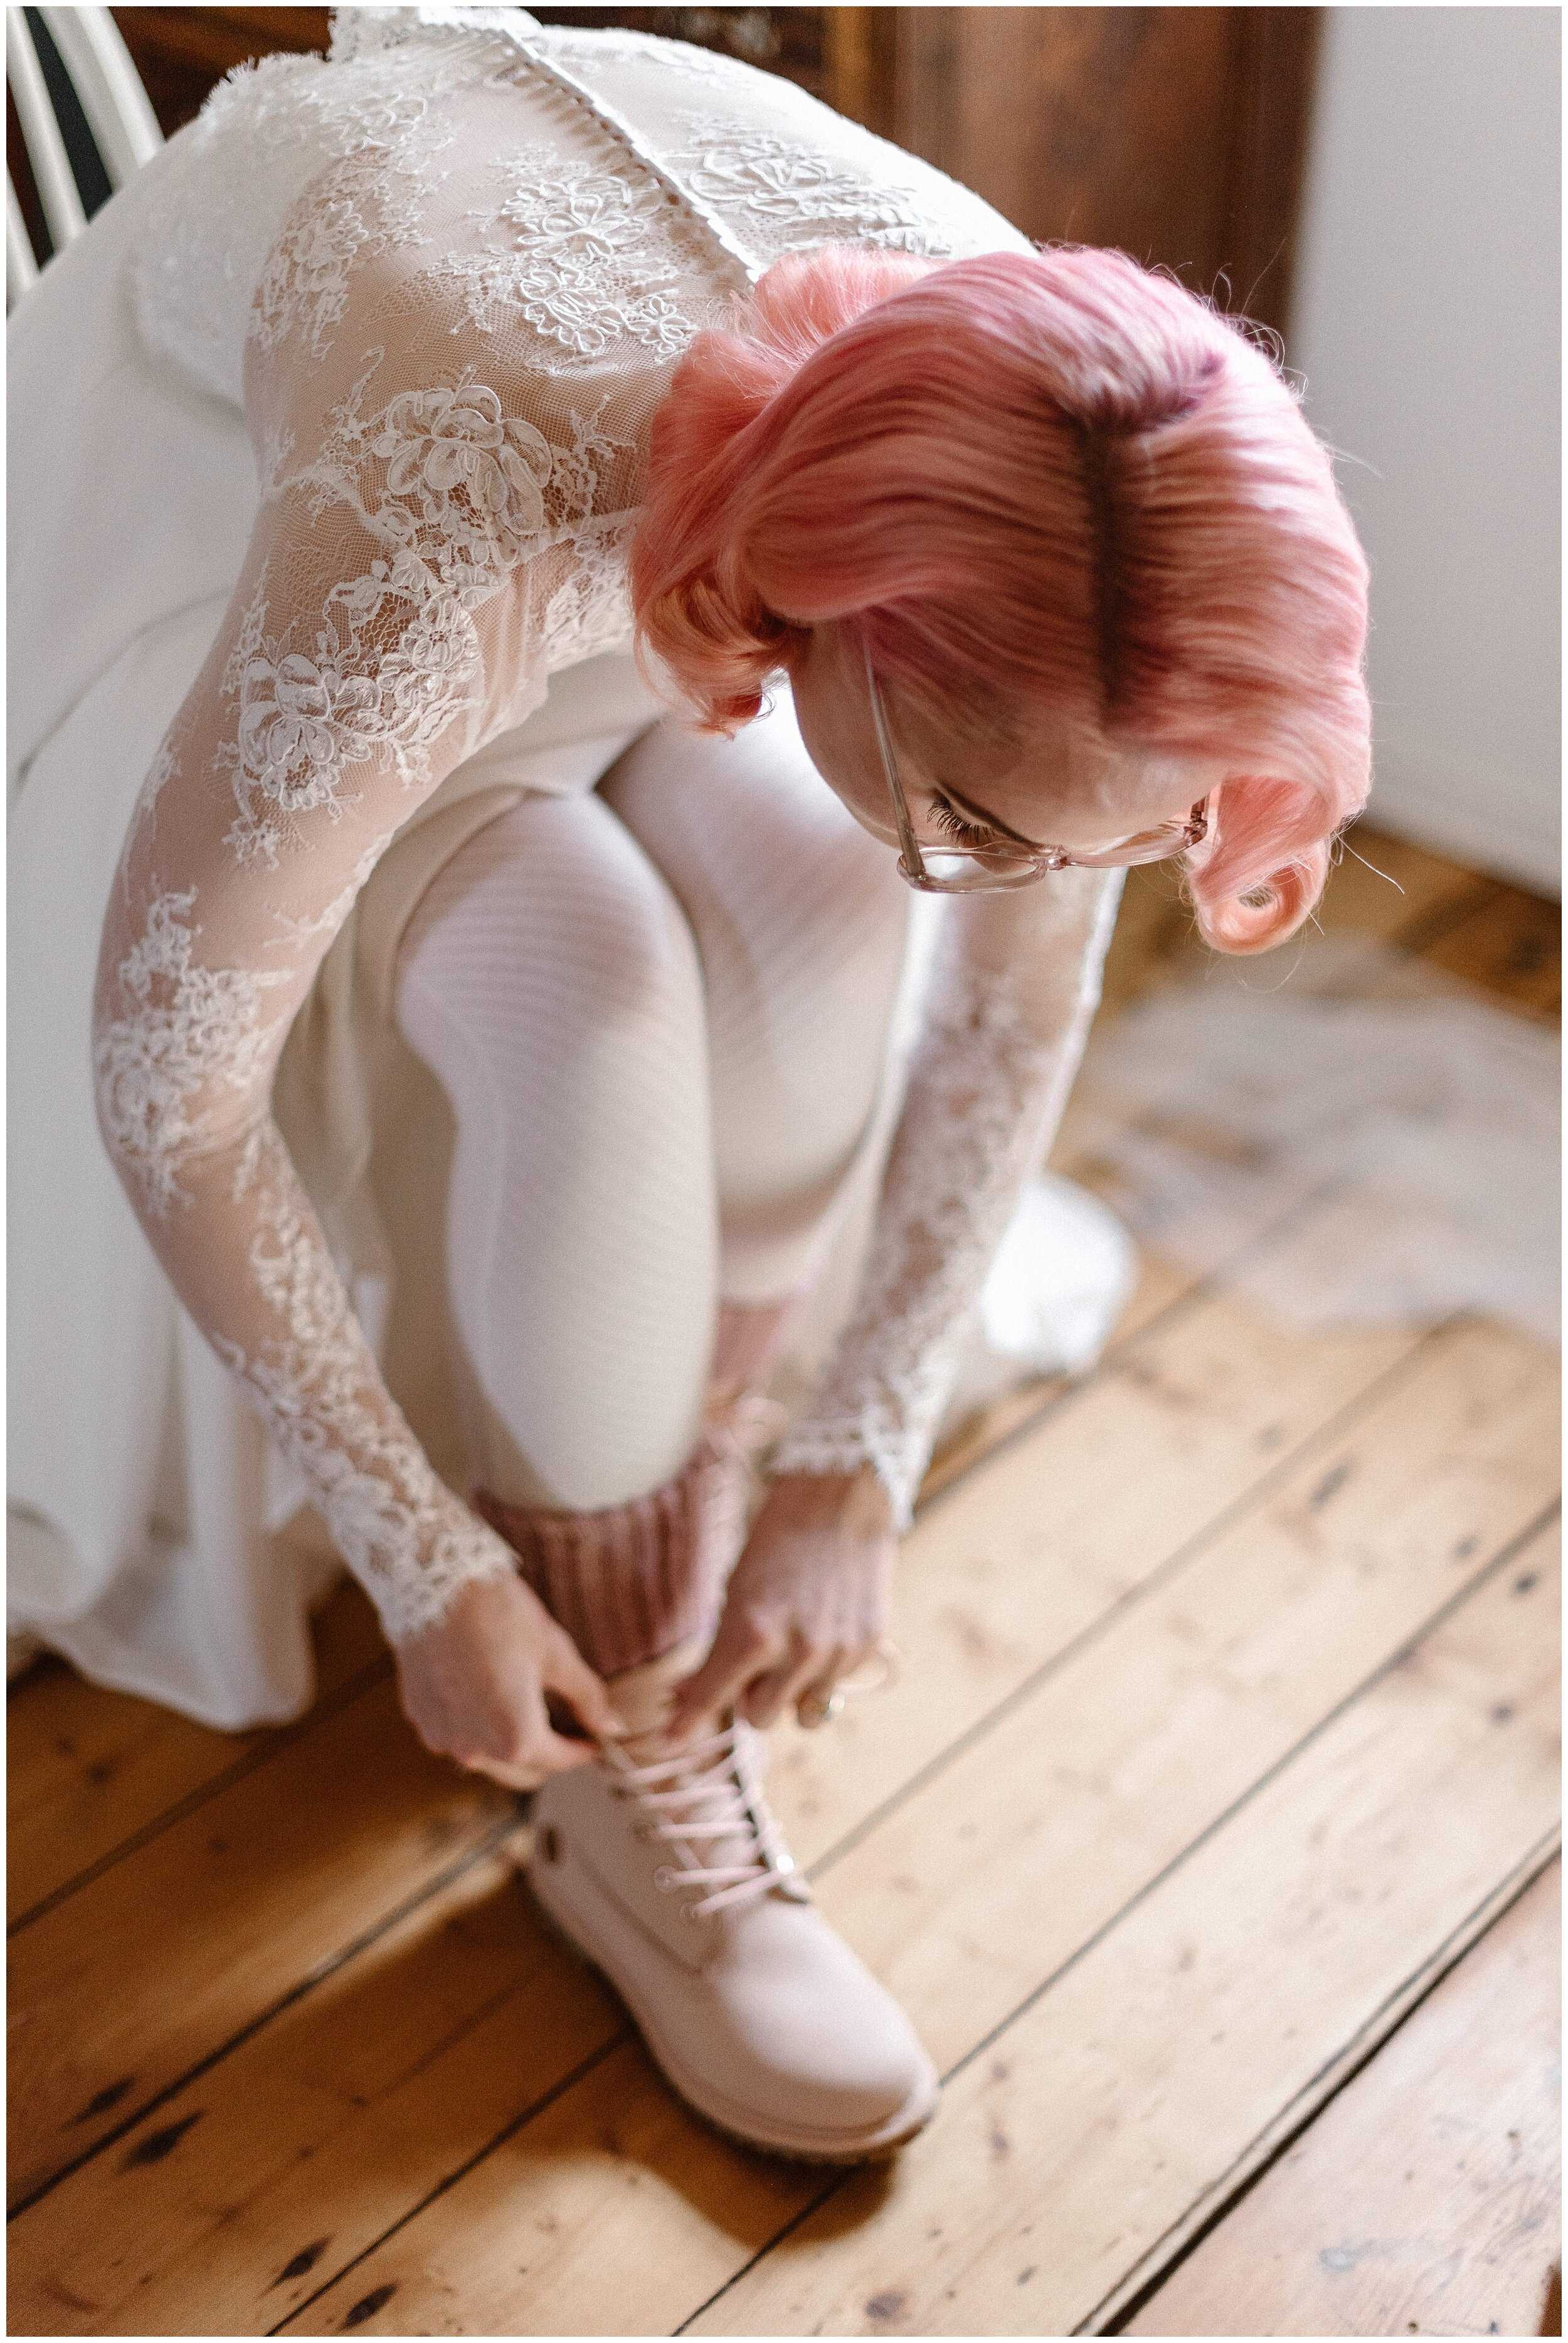 The bride, Elaura, leans down to tie up her pastel pink Justin boots as she finishes getting her vintage wedding look ready for her adventure elopement in the Faroe Islands. Elaura and Daryn's destination wedding in the Faroe Islands was exactly the mood the two Australians were going for — foggy, dramatic, and epic.